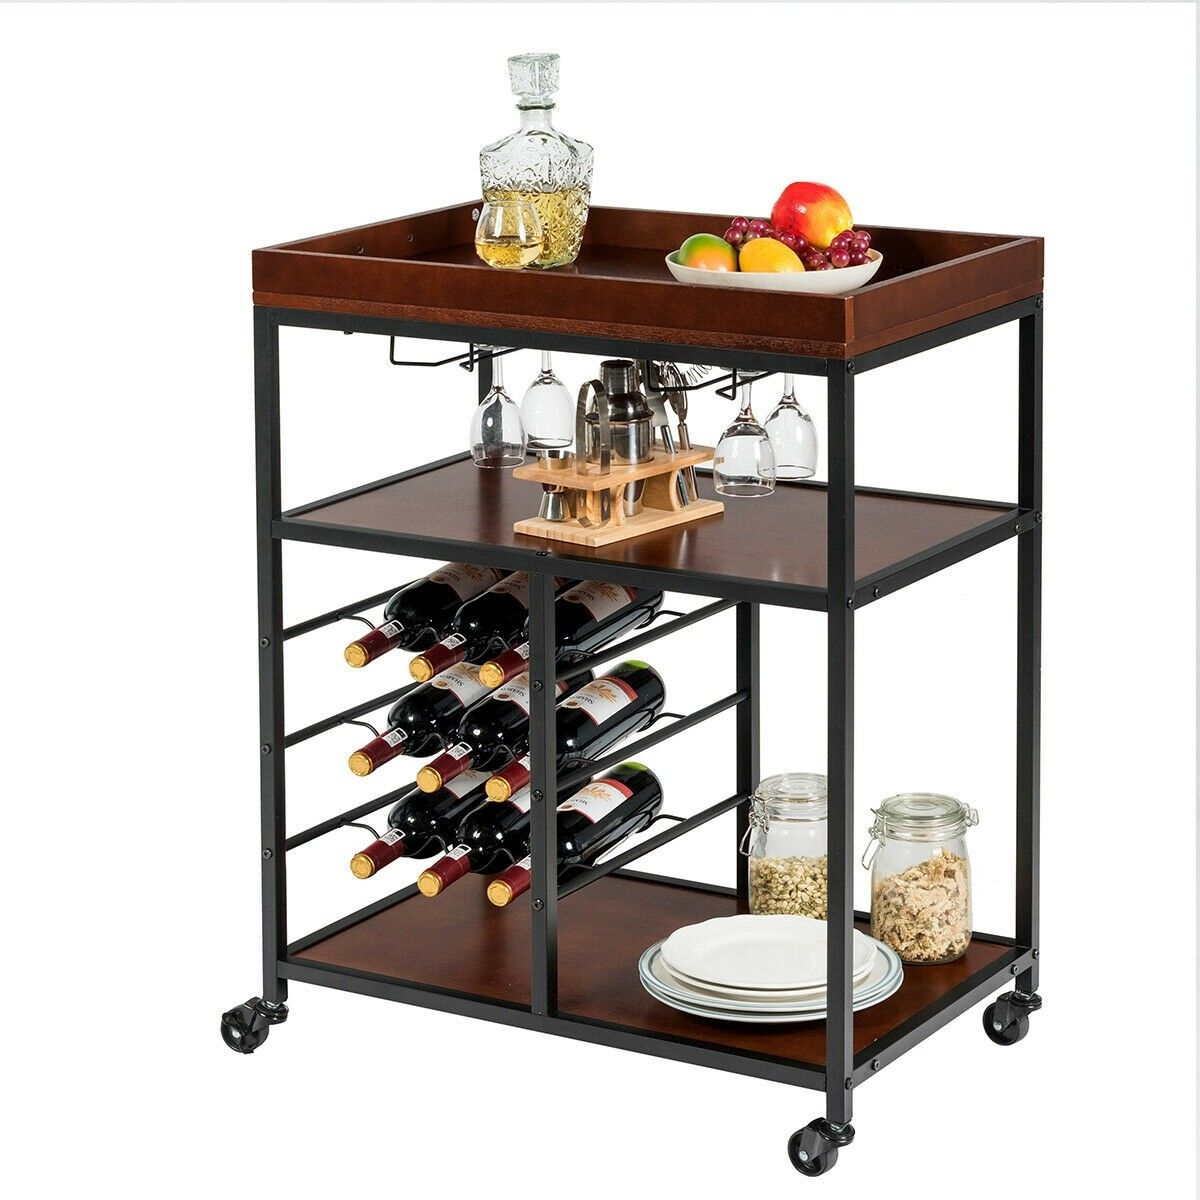 Diy Kitchen Island With Wine Rack Step By Step Small Space Kitchen Small Kitchen Storage Kitchen Remodel Small